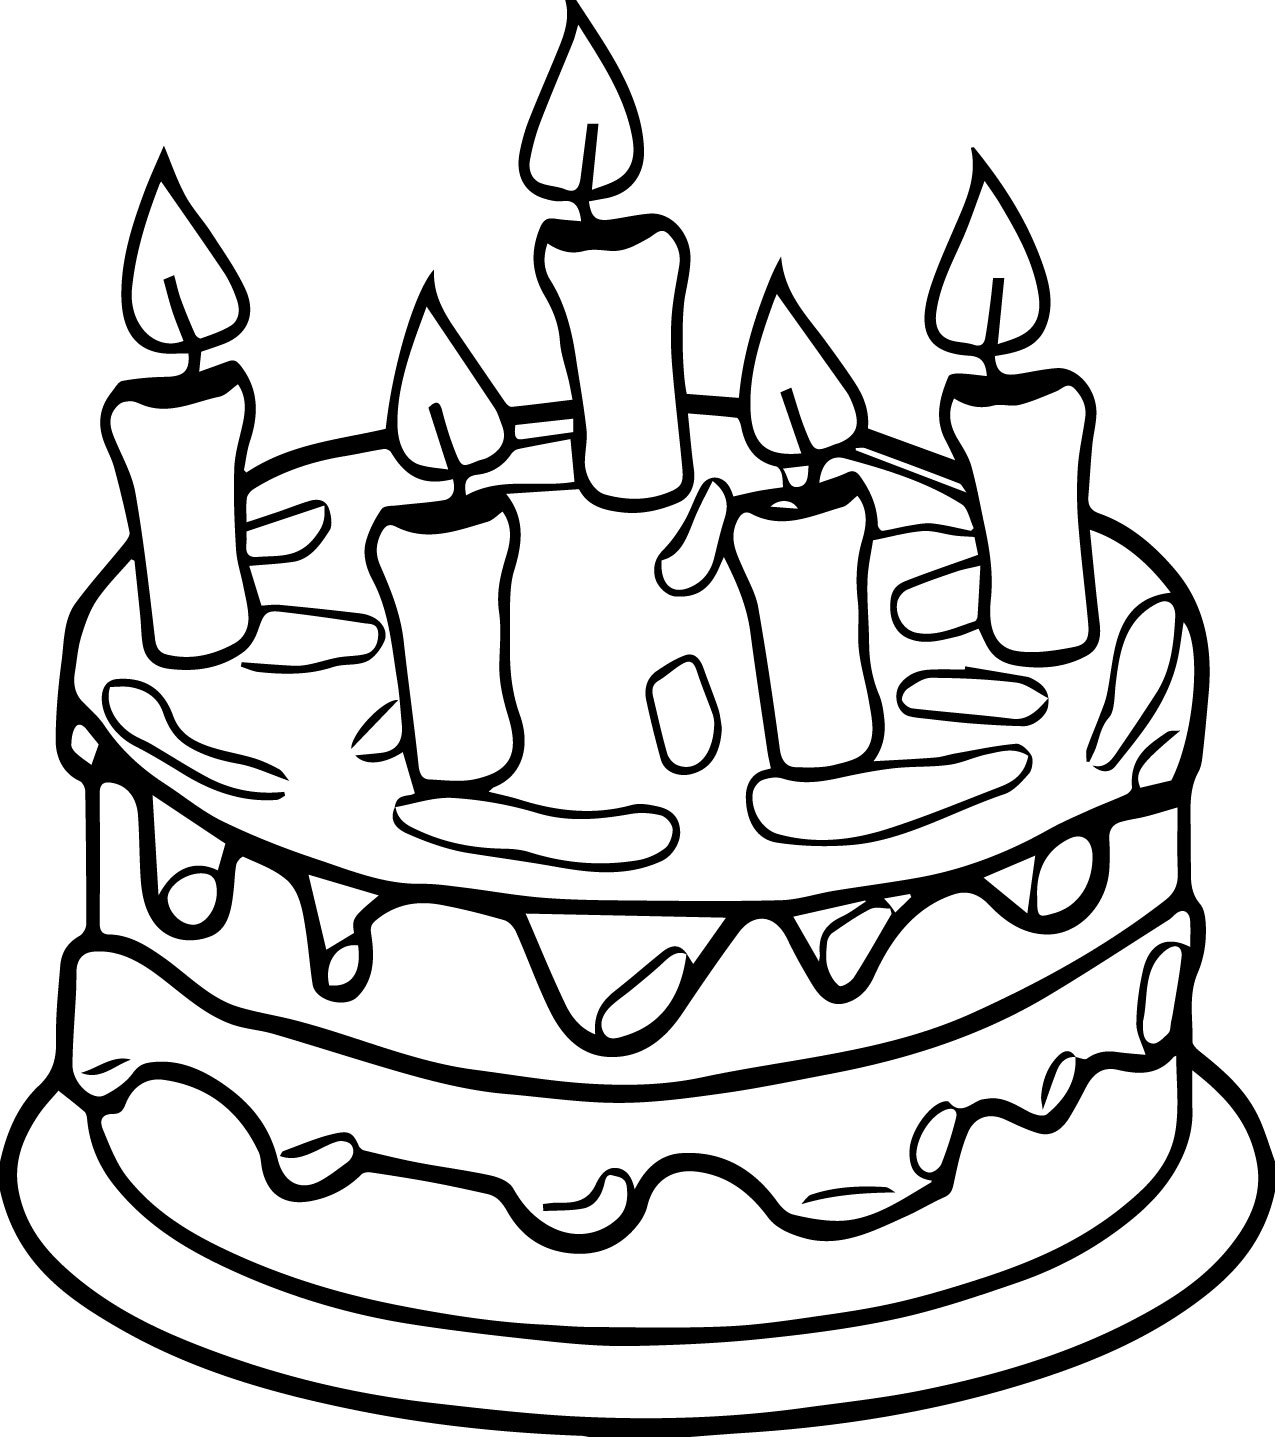 coloring cake pictures strawberry cake coloring pages strawberry cake coloring cake pictures coloring